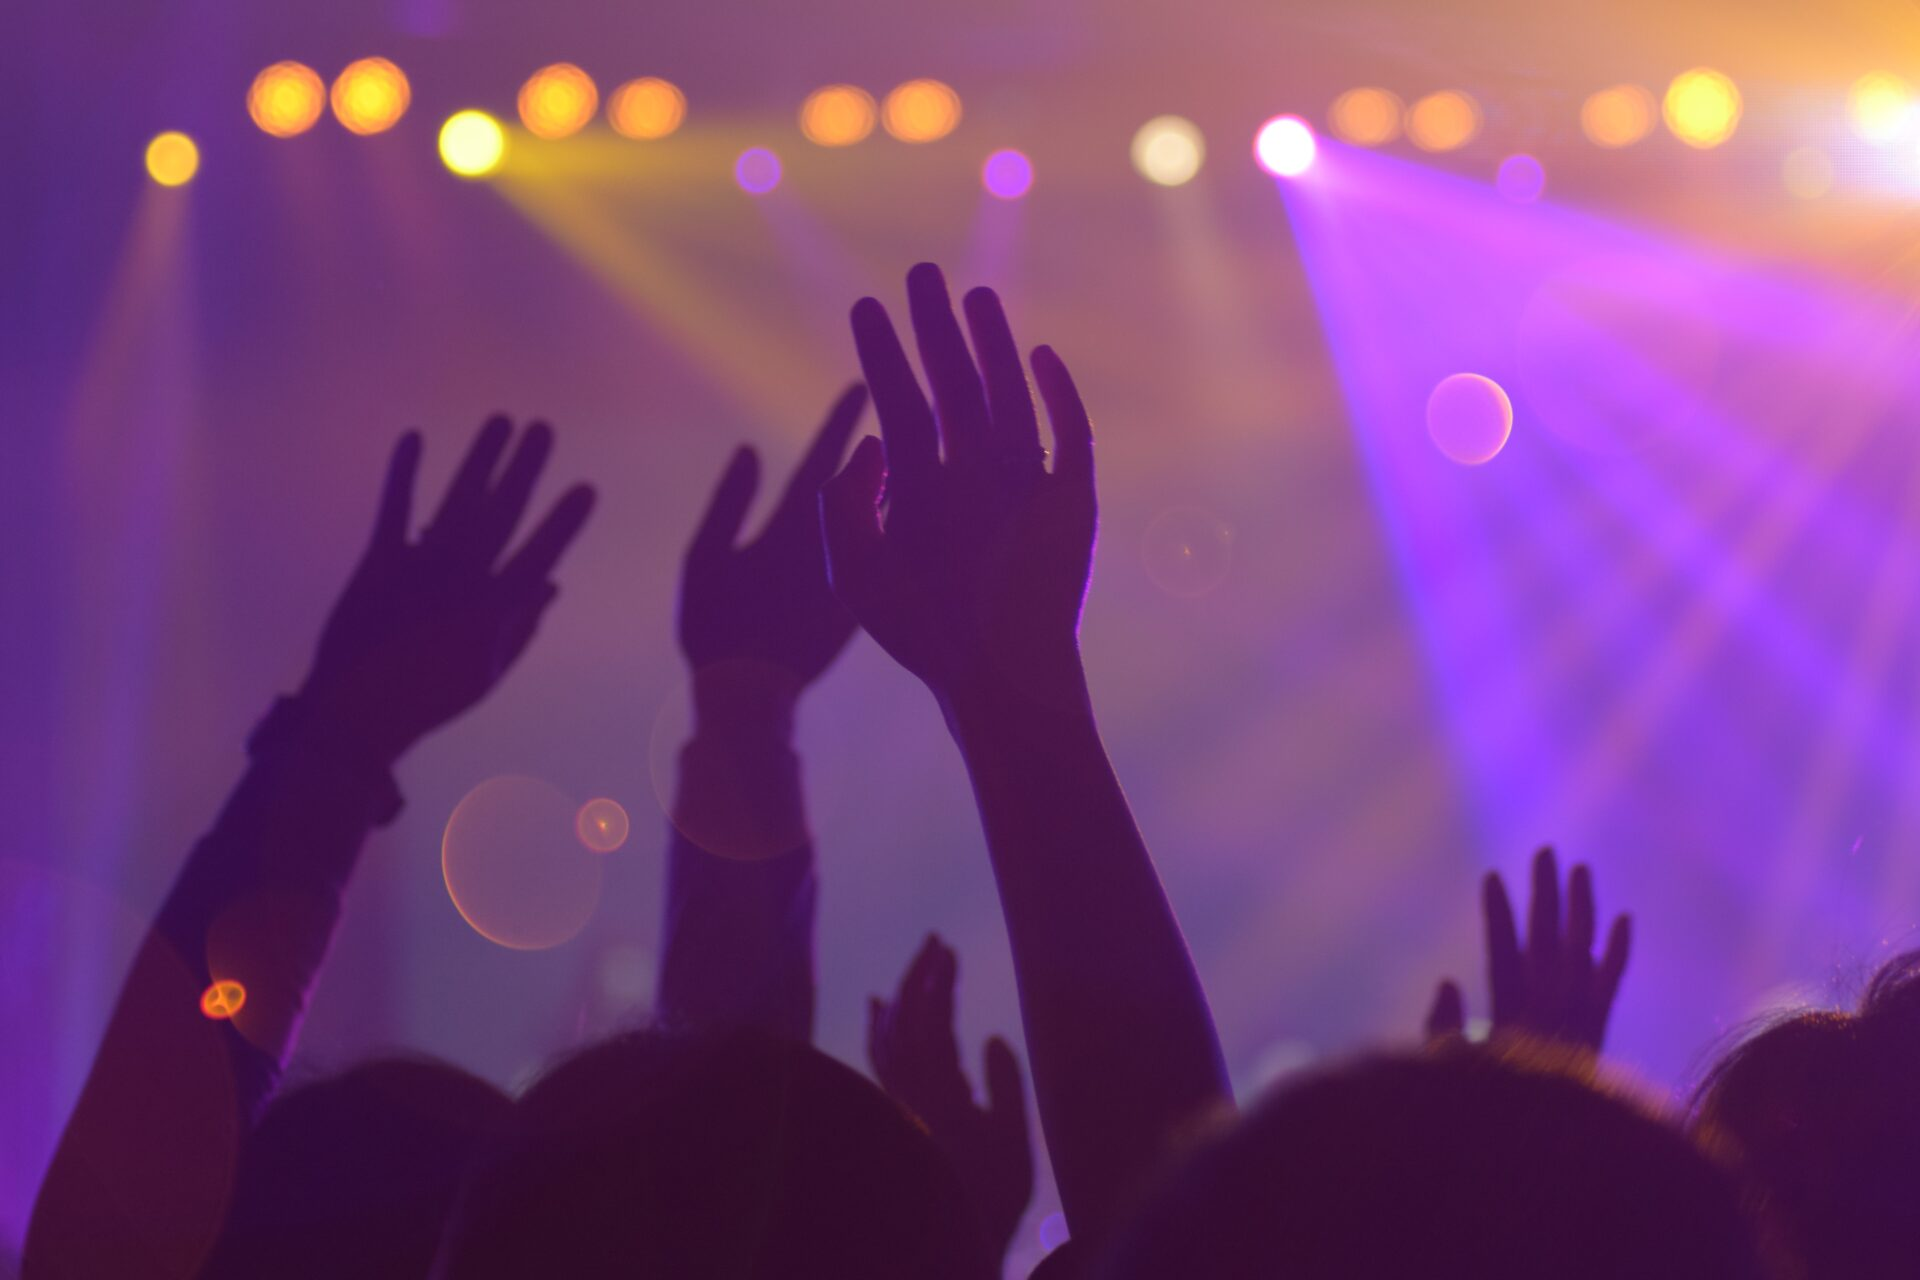 People with their hands up at a concert.